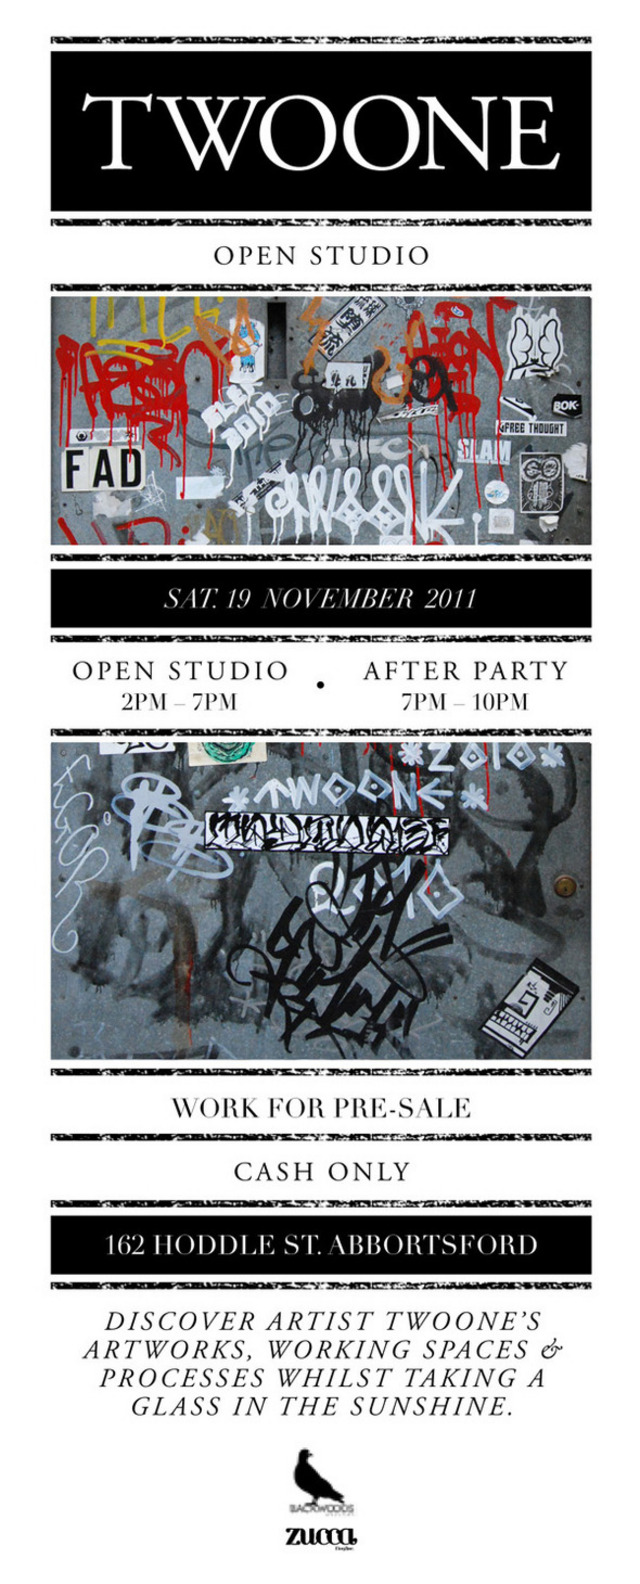 TwoOne - Open Studio